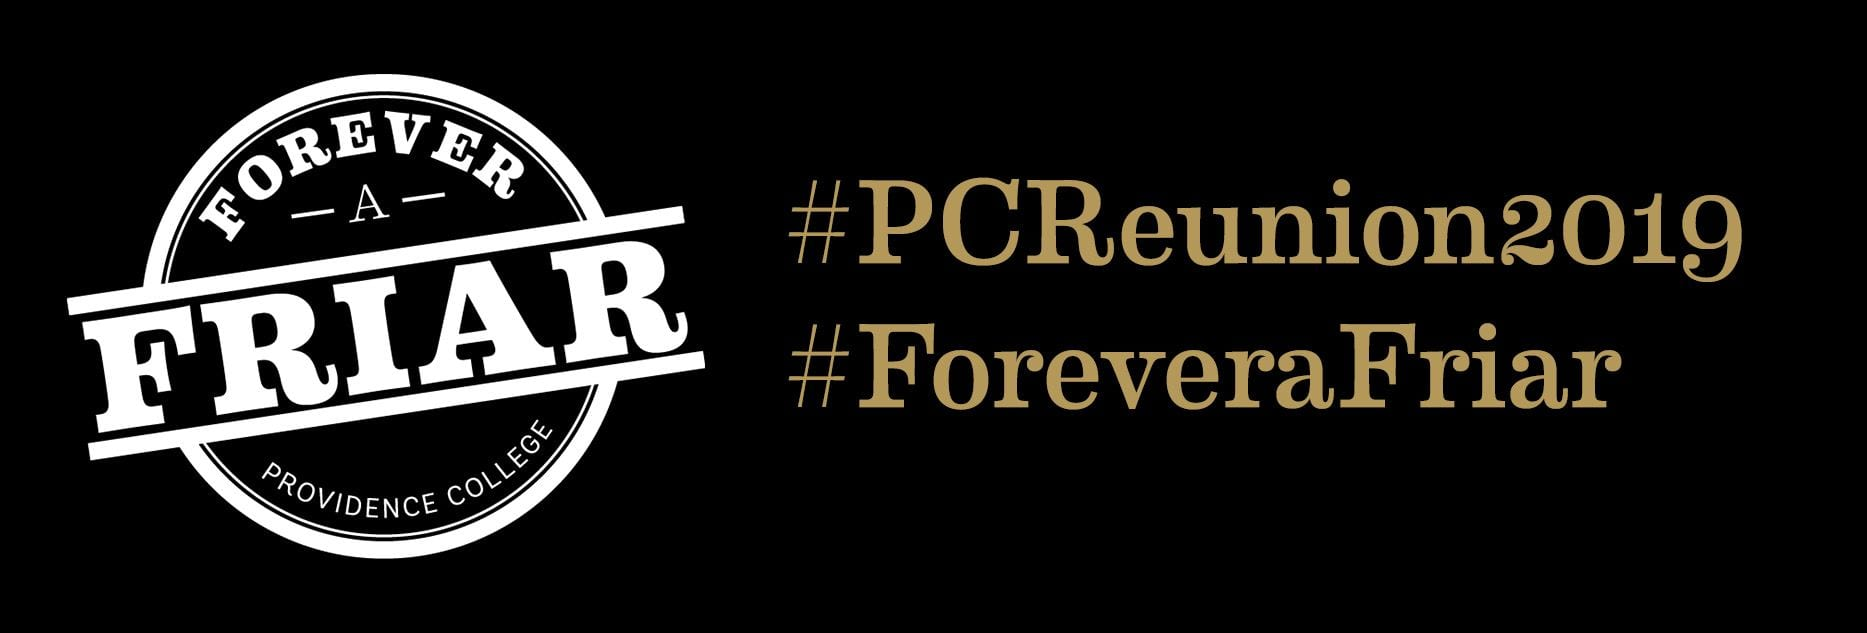 Reunion Mark #PCReunion2019 #ForeveraFriar